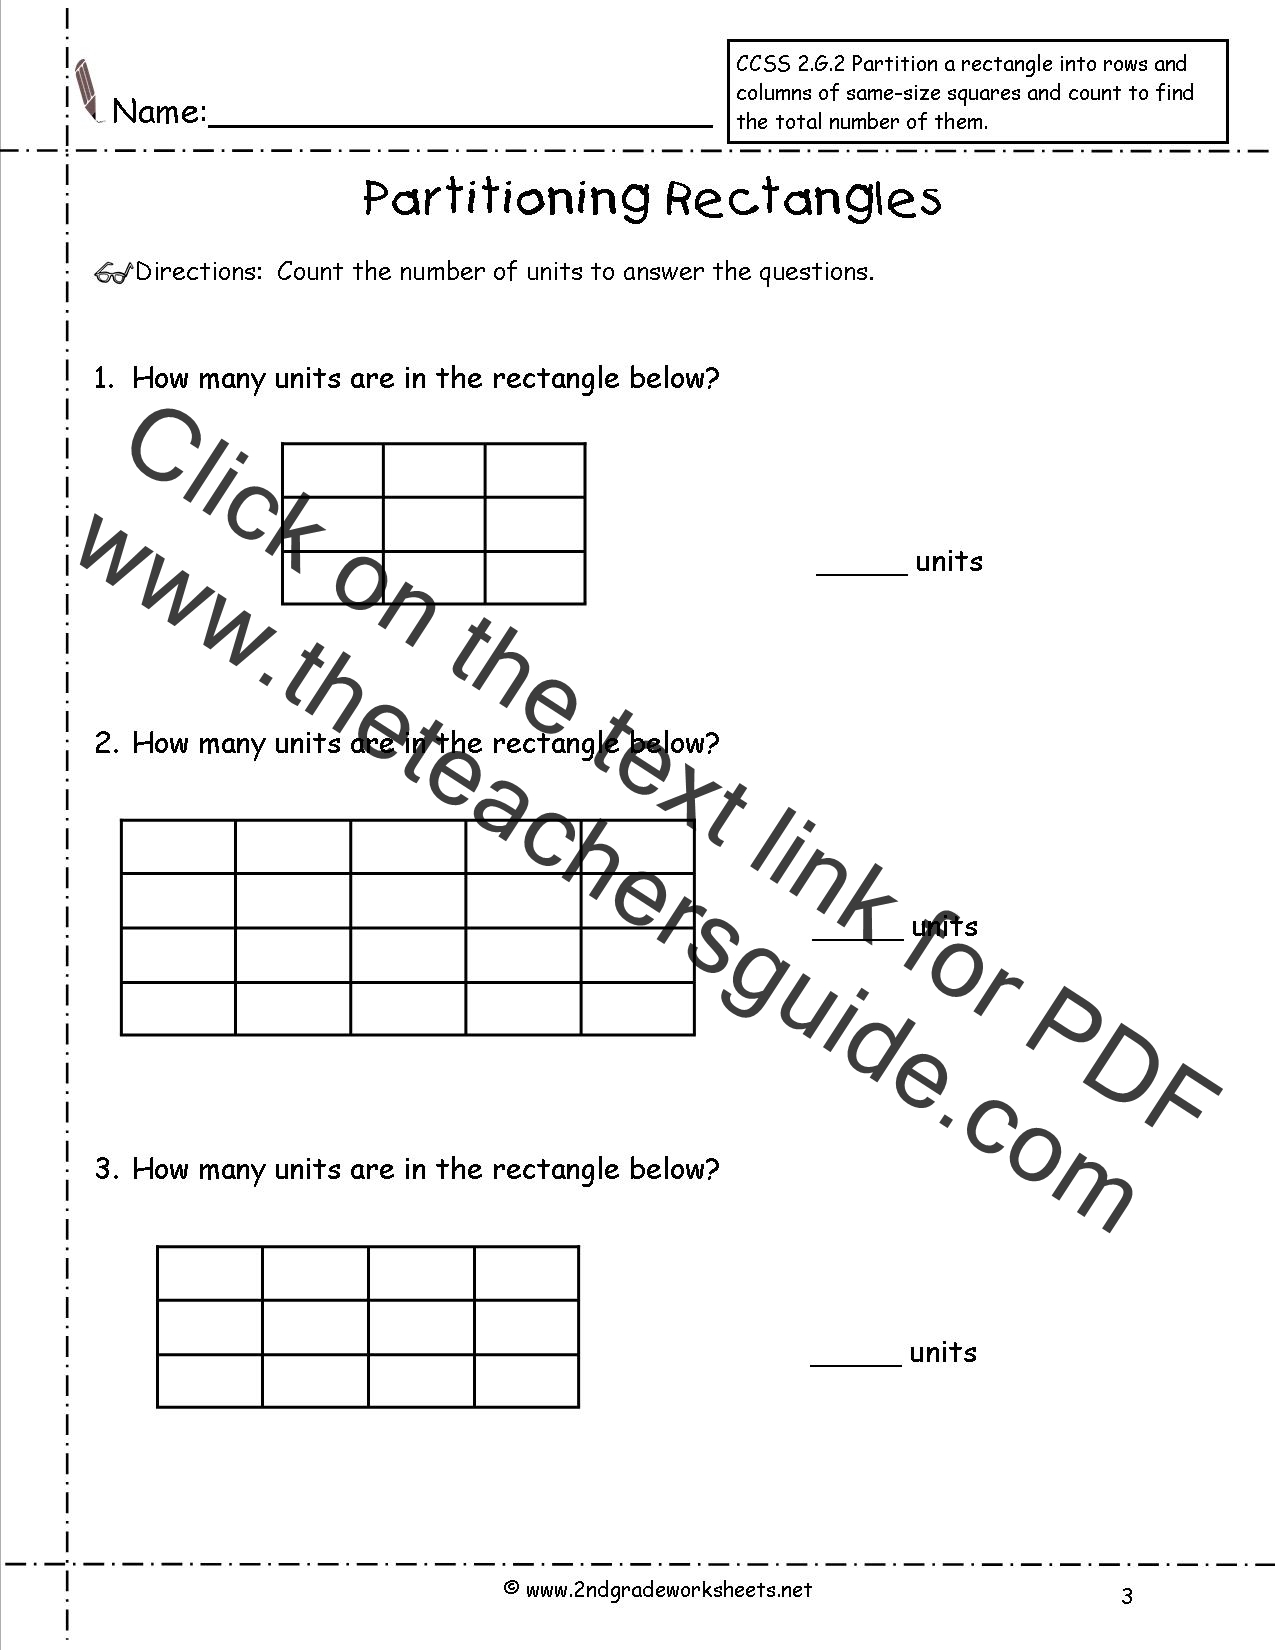 Uncategorized Dot Plot Worksheets 100 dot plot worksheet line plots clusters gaps outliers ccss worksheets first grade common core assessment workbook partition rectangles state s